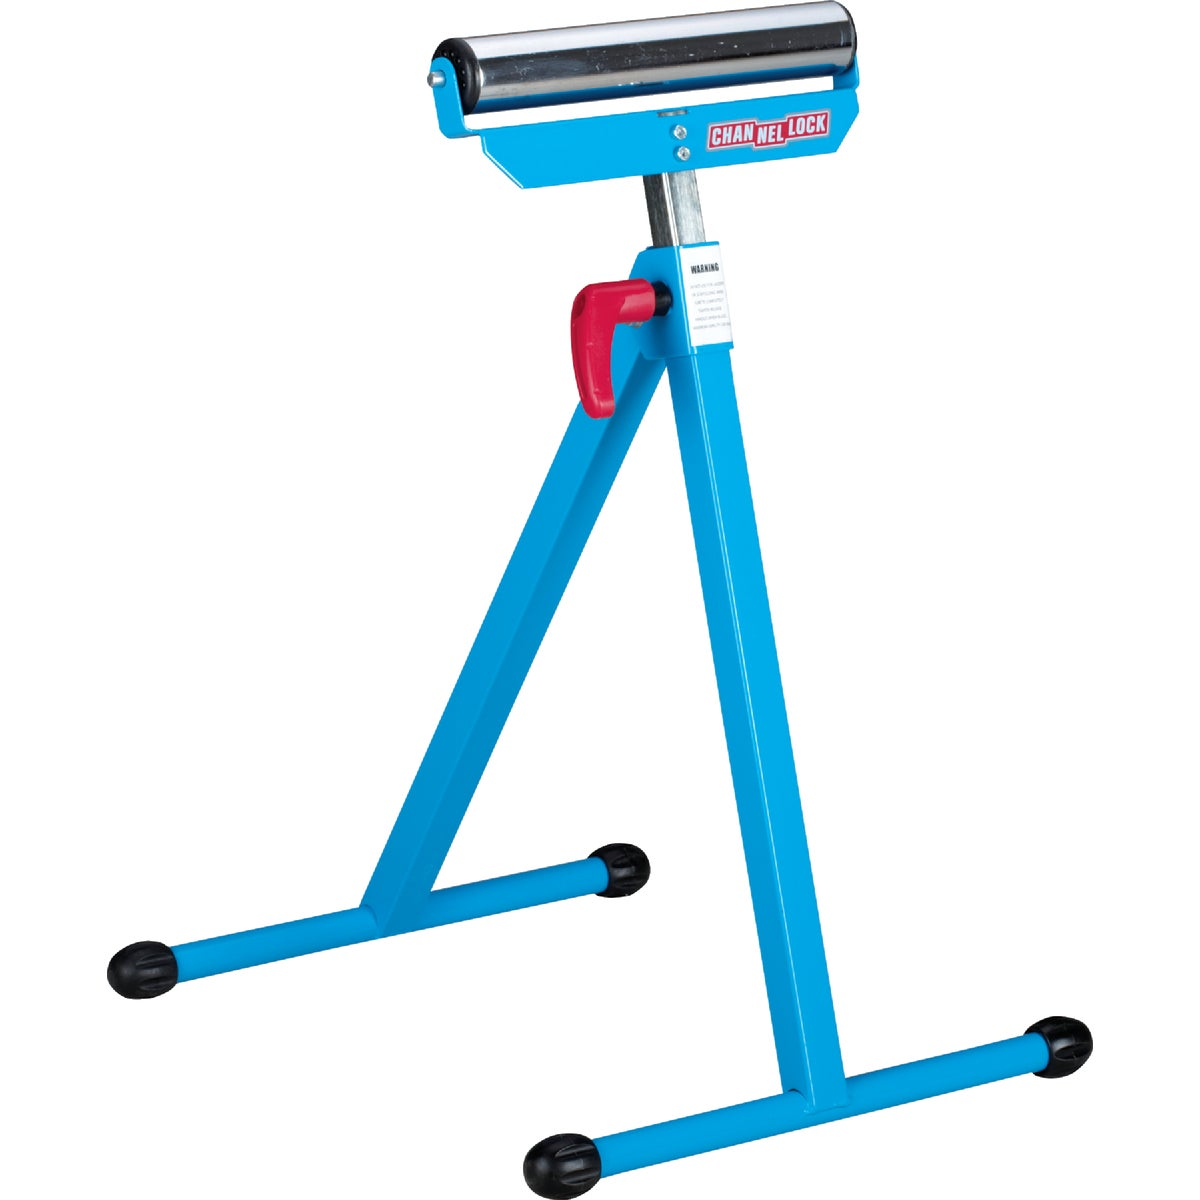 SINGLE ROLLER STAND - YH-RS004 by Channellock®